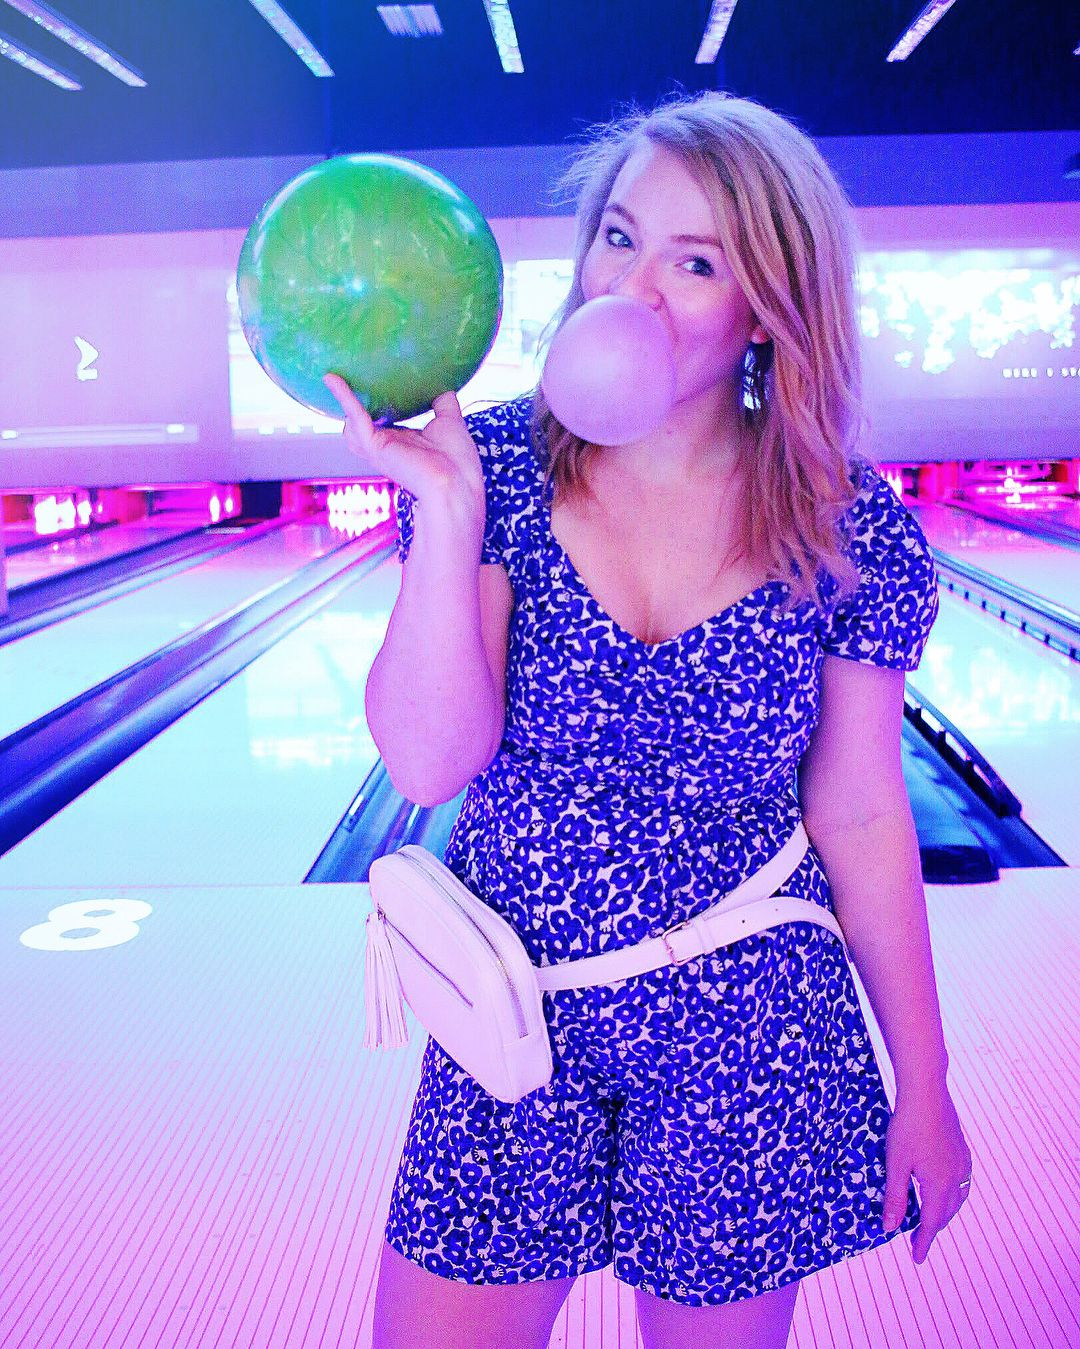 What To Wear Bowling Cute Bowling Shot Cute Bowling Photoshoot Thrifty Fashion Thrifty Style Thrift Store Fashion Thrifty Fashion Motherhood Fashion